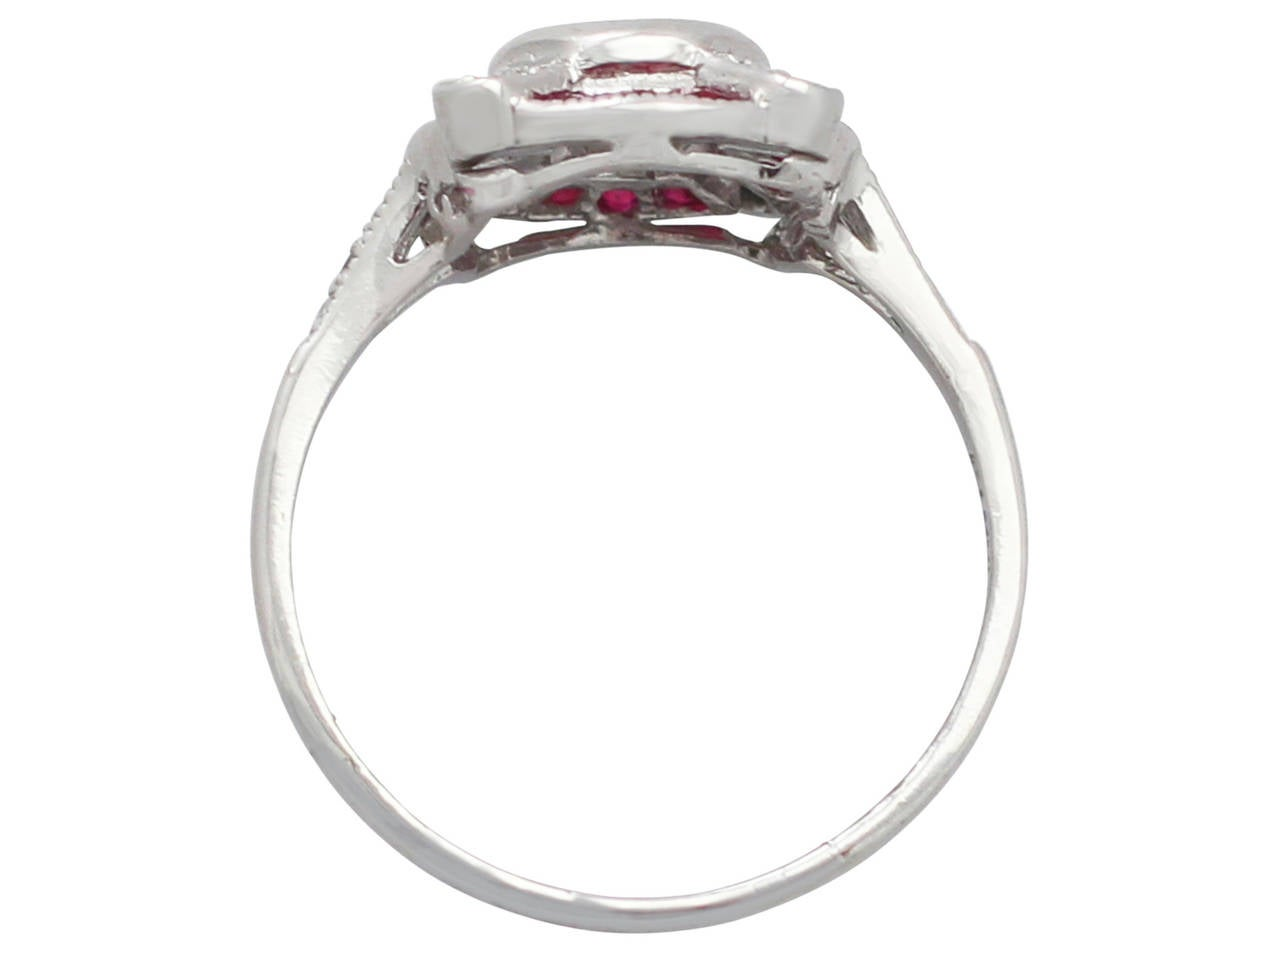 1940s Ruby and Diamond Platinum Cocktail Ring In Excellent Condition For Sale In Jesmond, GB